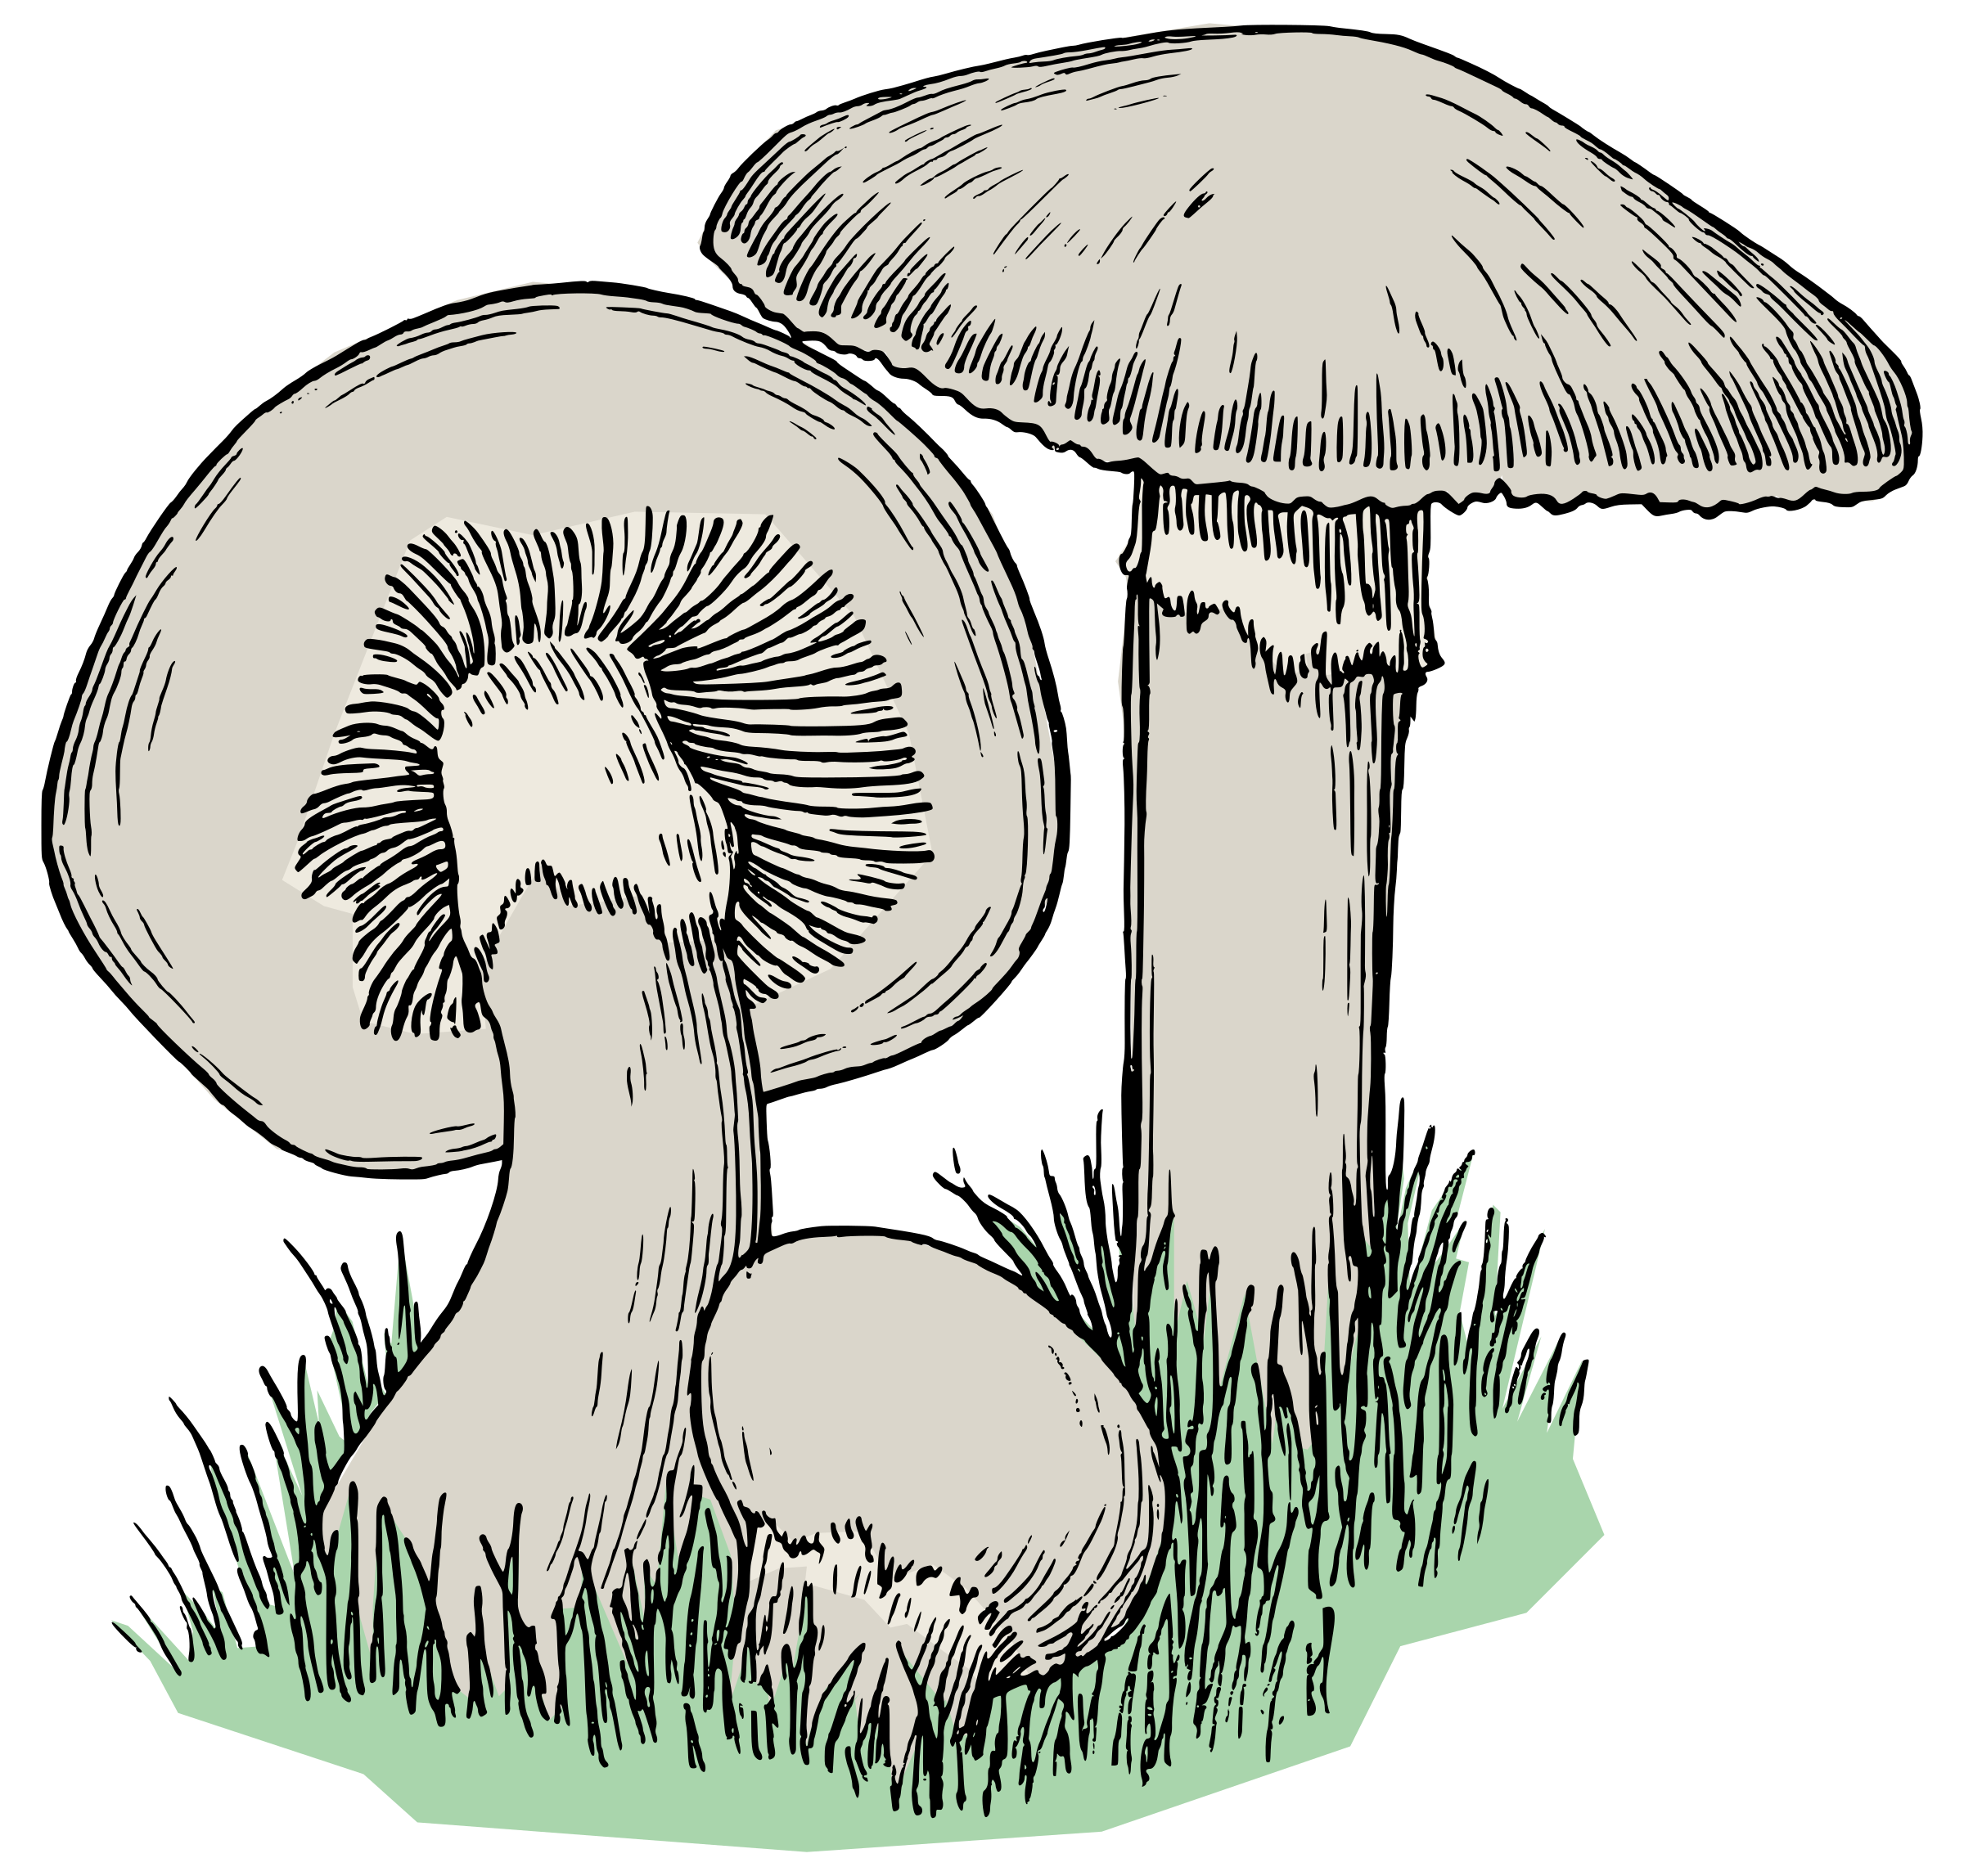 Drawing detail mushroom. Clipart mushrooms colour big